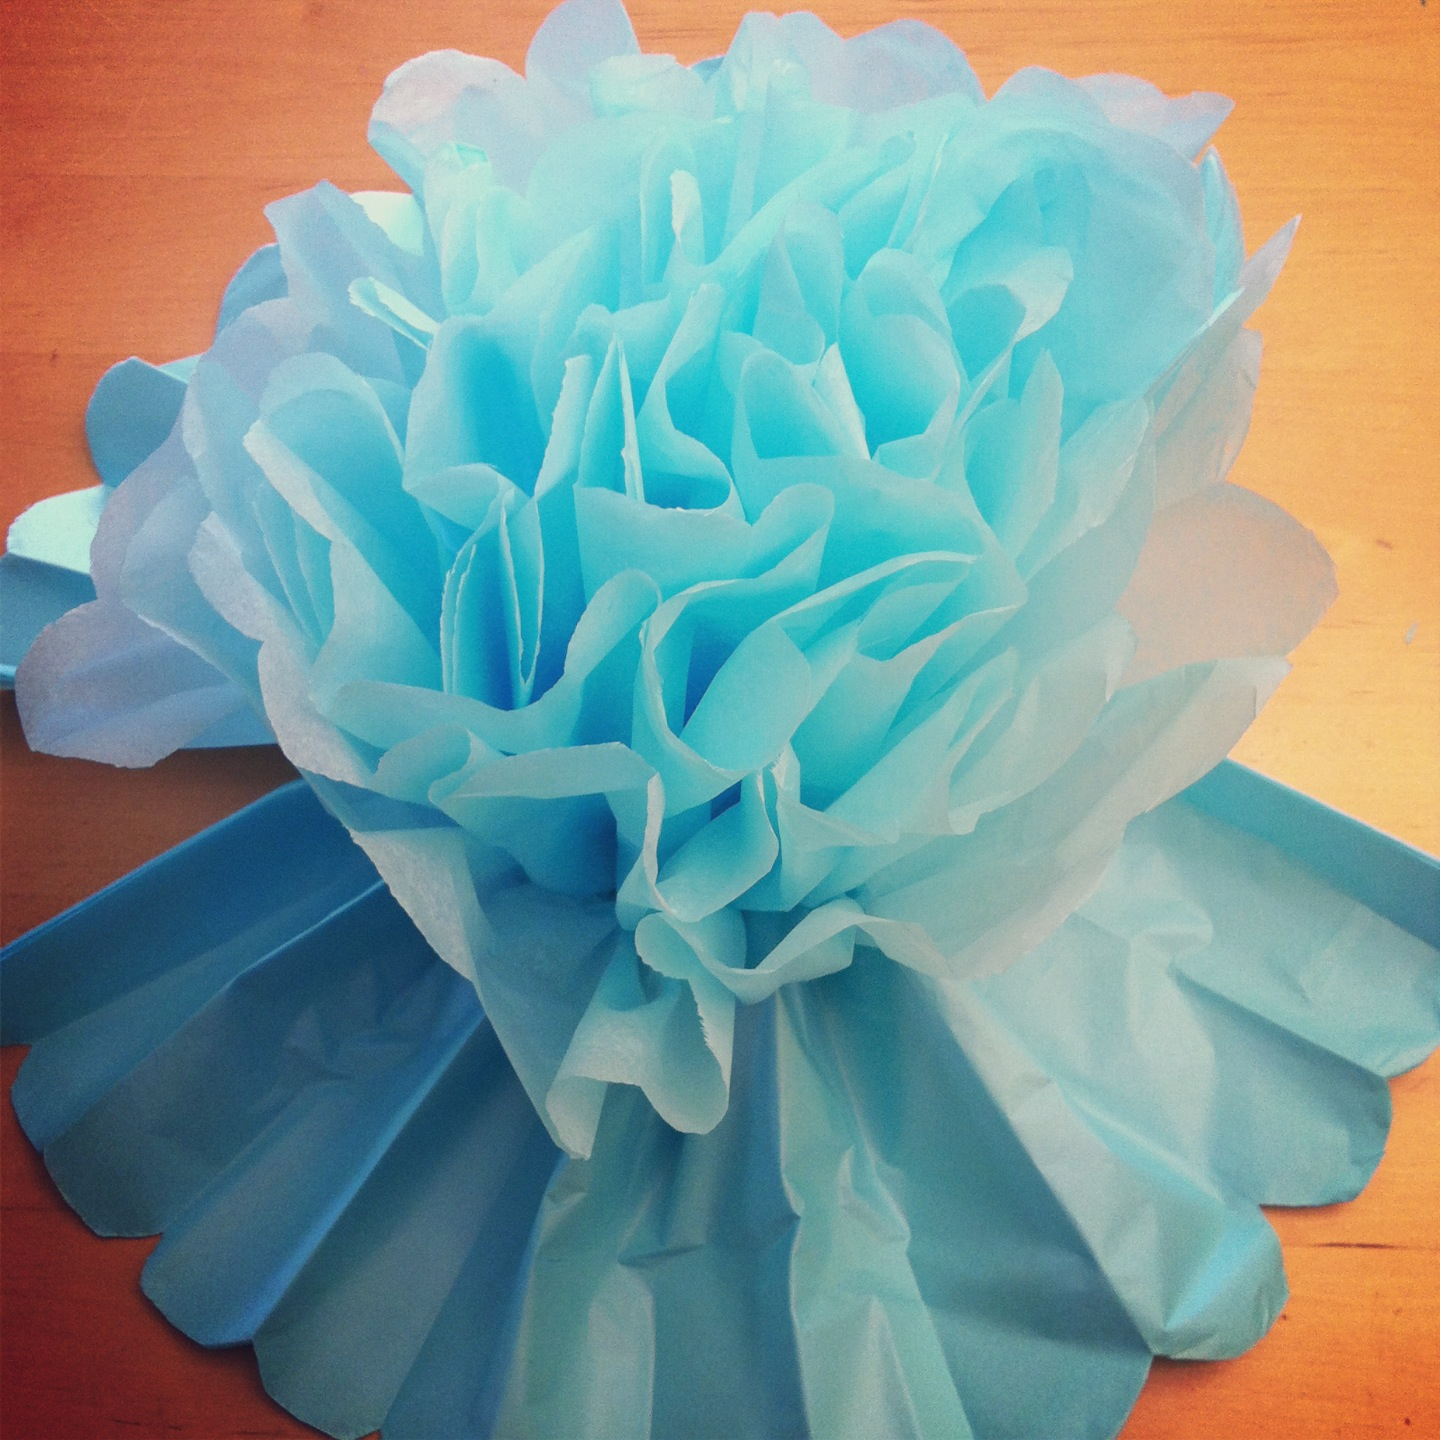 DIY Giant Tissue Paper Flowers Tutorial 2 for $1.00 Make Beautiful Birthday Party Decorations Step 8 : tissue paper flower decoration ideas - www.pureclipart.com